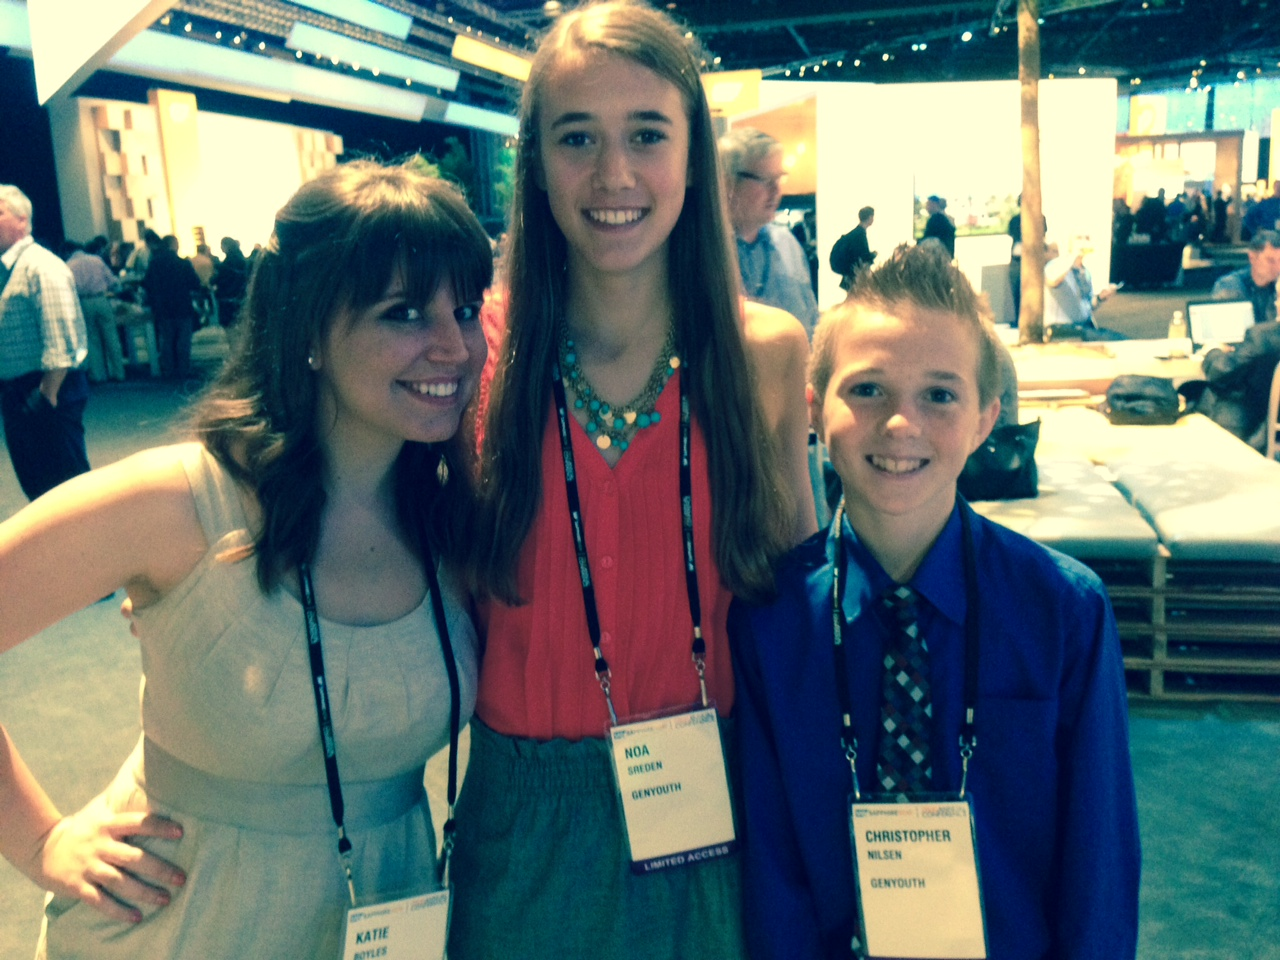 Teenage-reporters-from-the-GENYOUth-foundation-interviewed-SAP-executives-and-influencers-at-SAPPHIRE-NOW.jpg